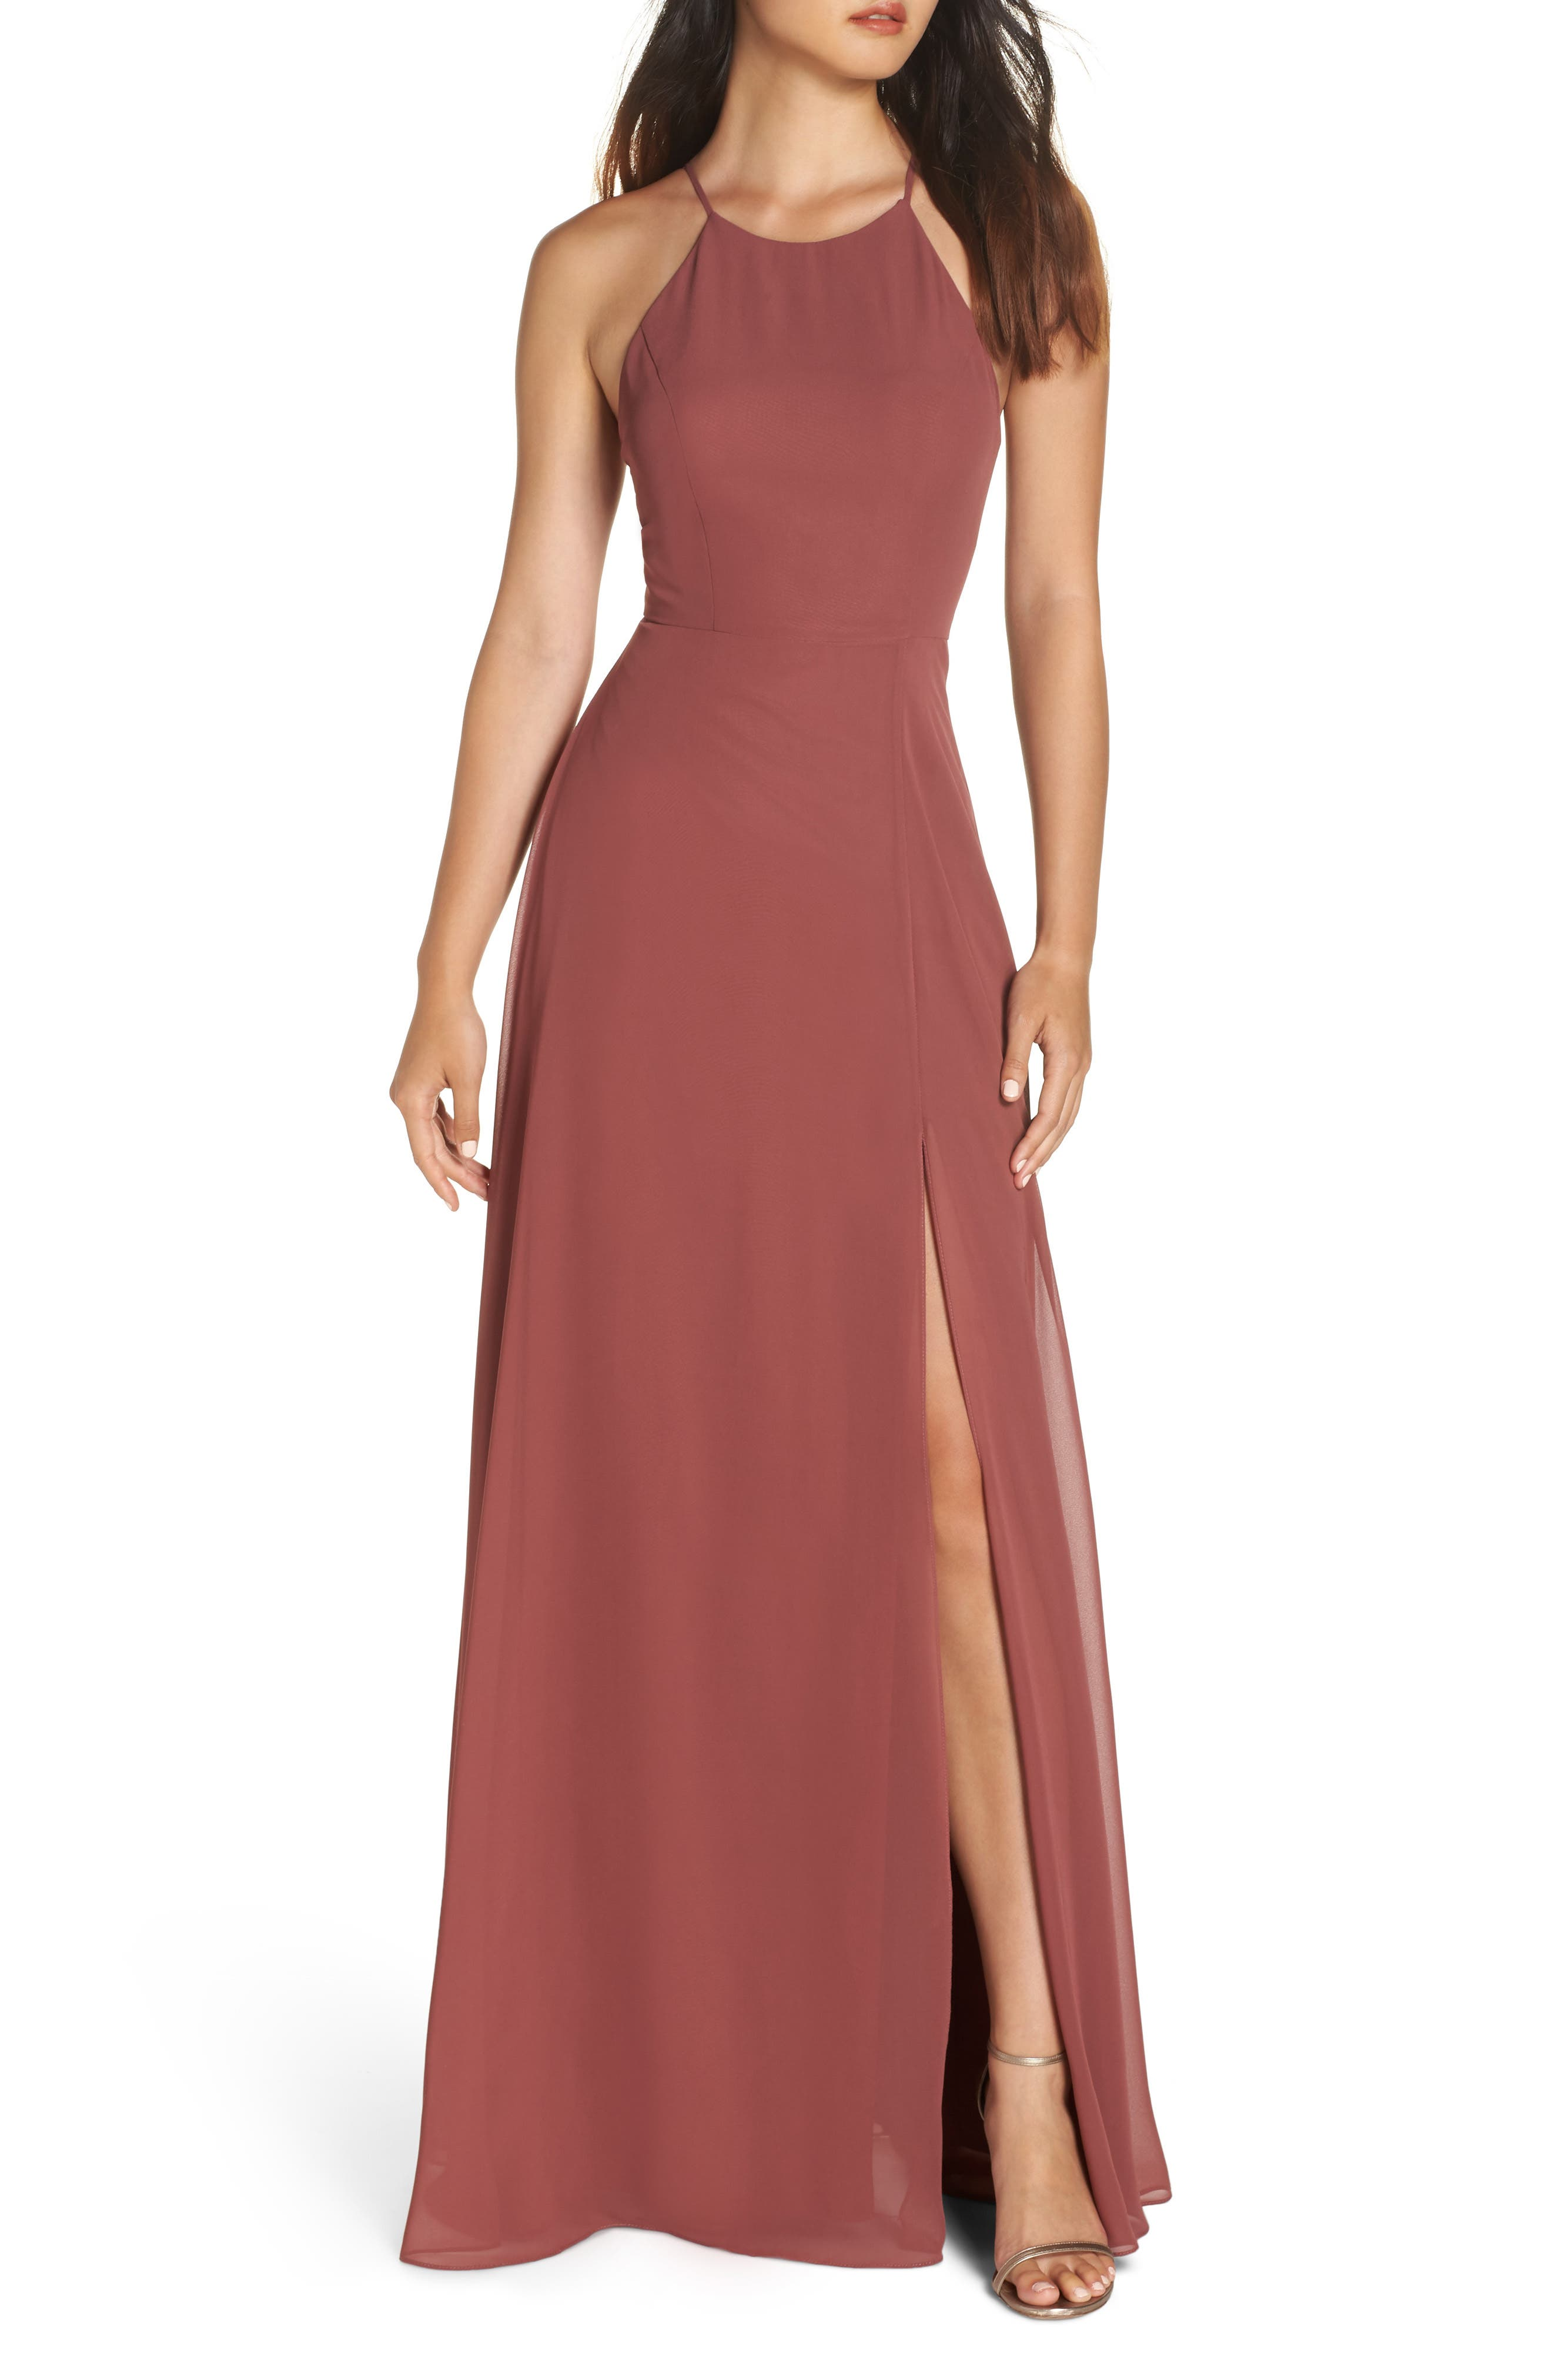 Kayla A-Line Halter Gown,                         Main,                         color, CINNAMON ROSE